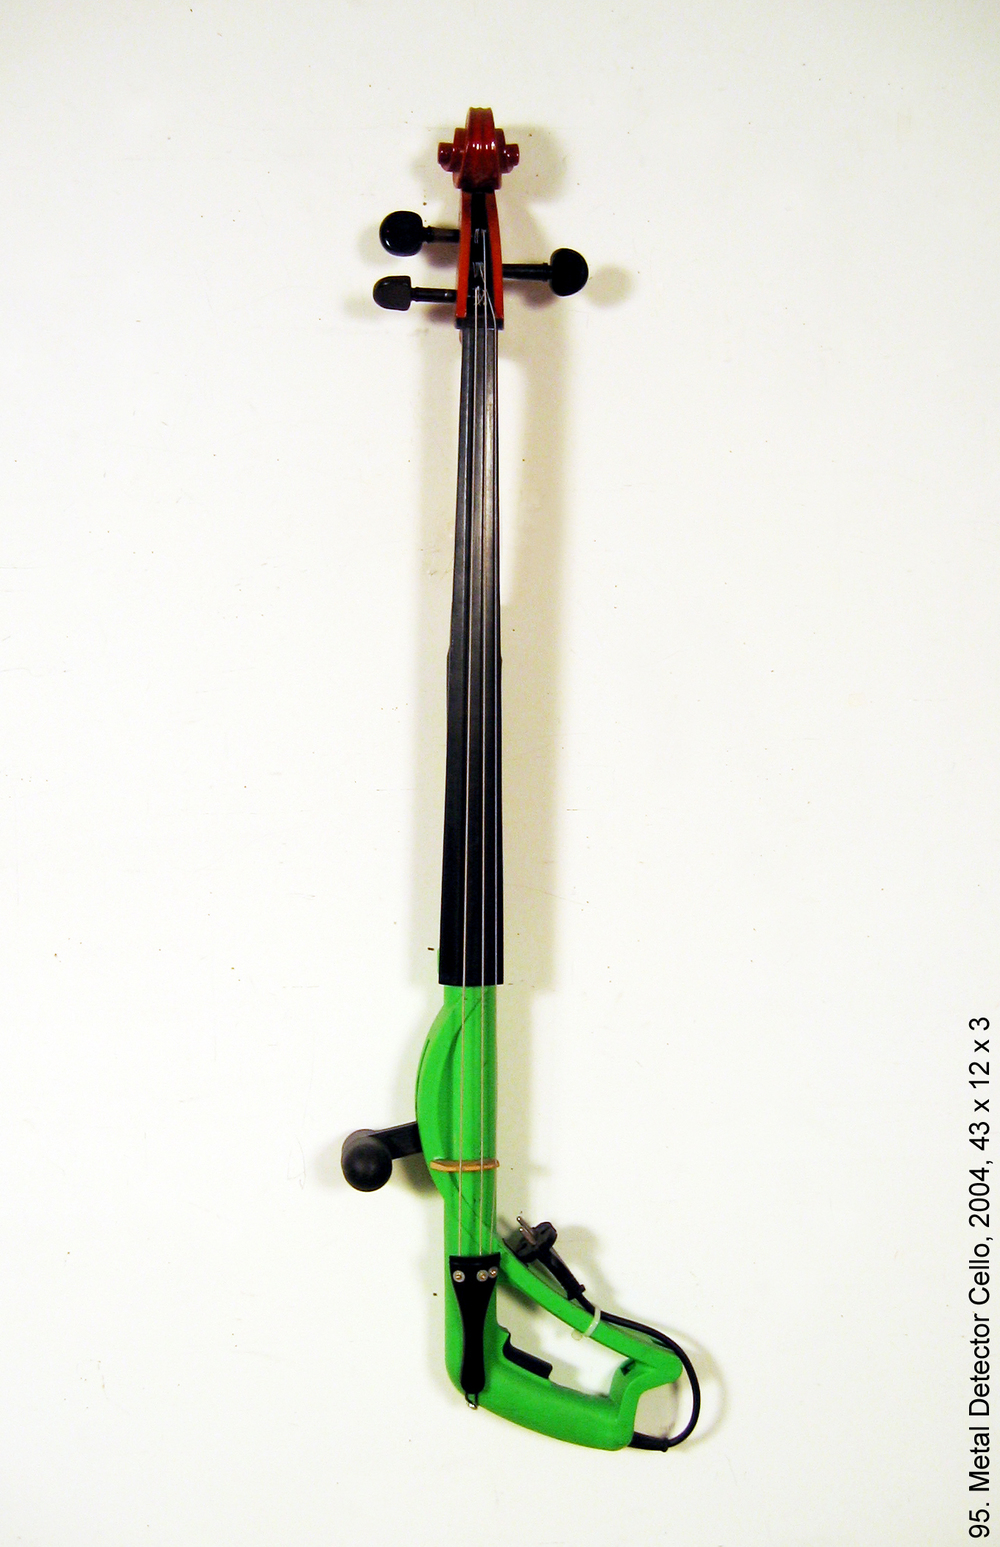 95 Metal Detector Cello wt.jpg